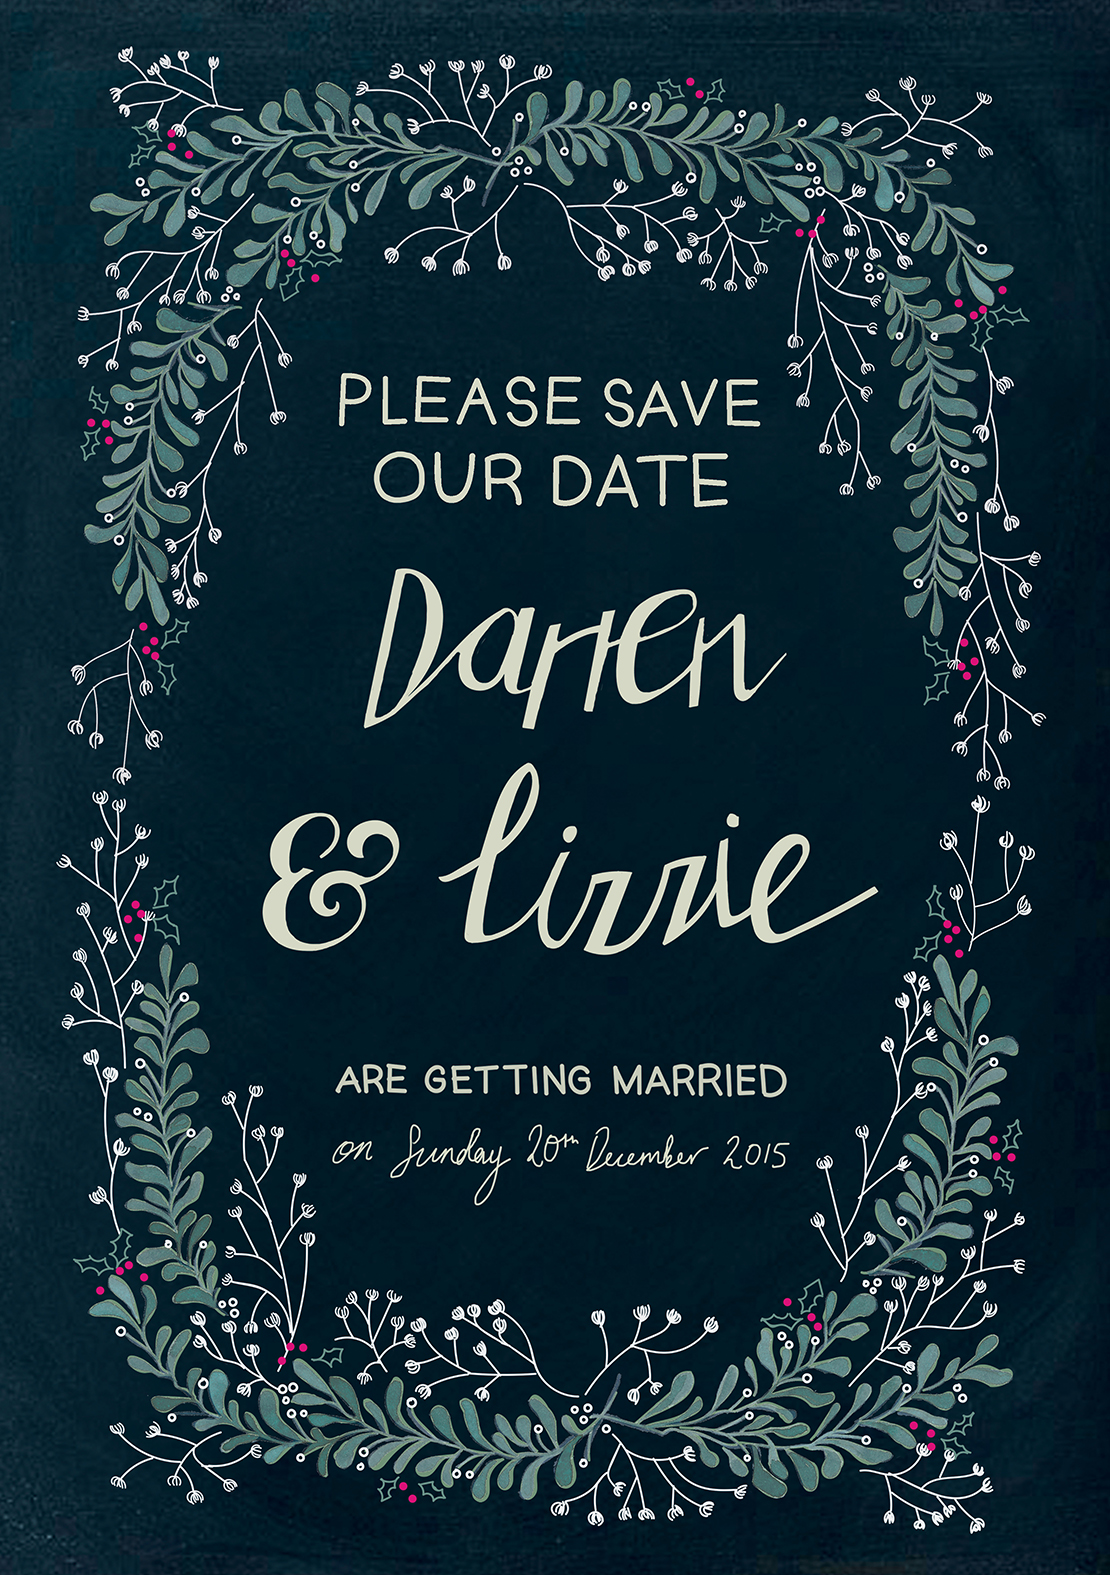 wedding invite illustration